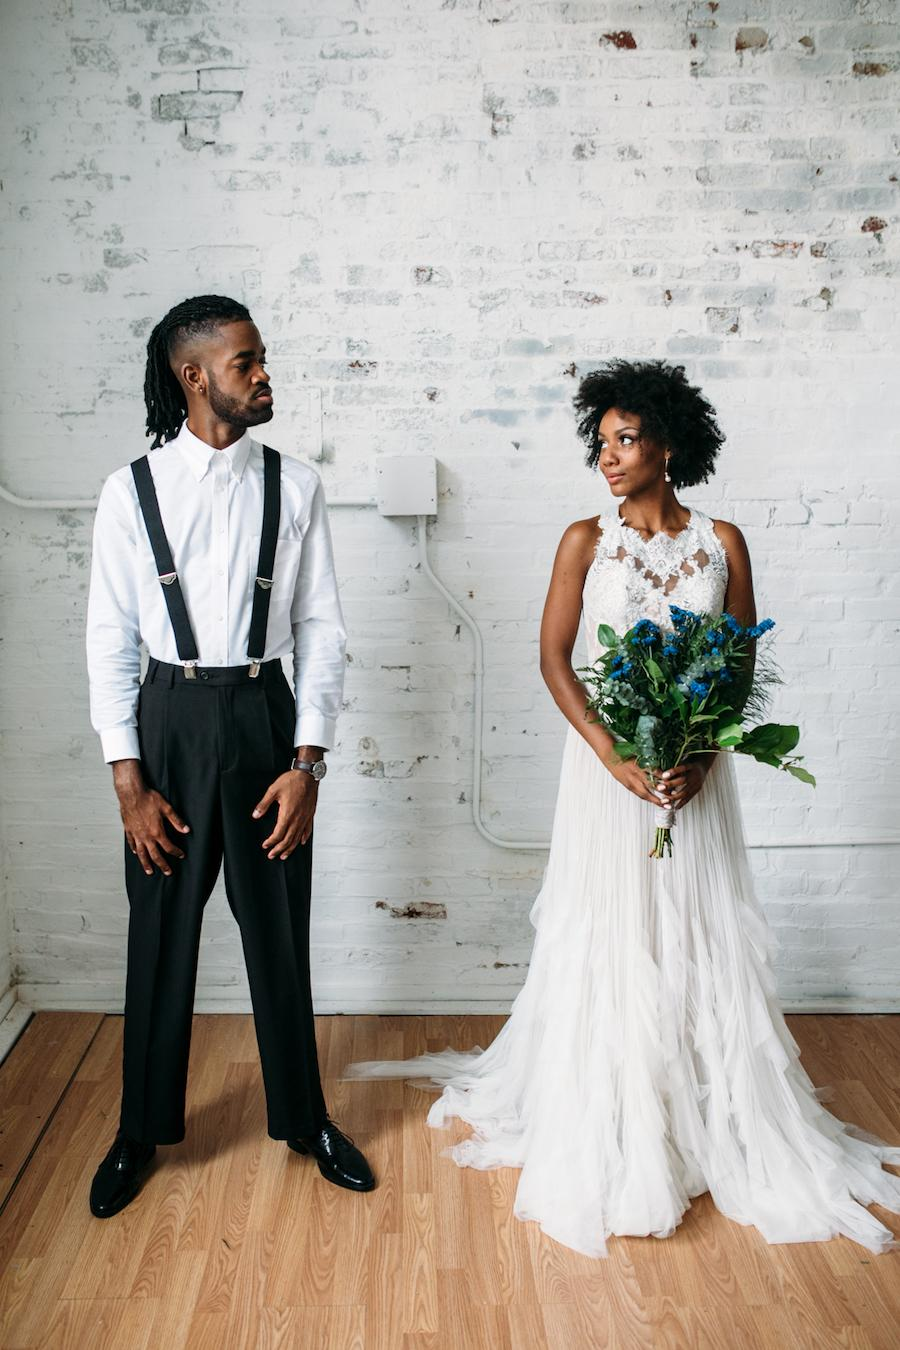 f2fde235b Four Unique Wedding Ideas For Every Bride and Groom Events by Merida Brae  Howard Photography Philly